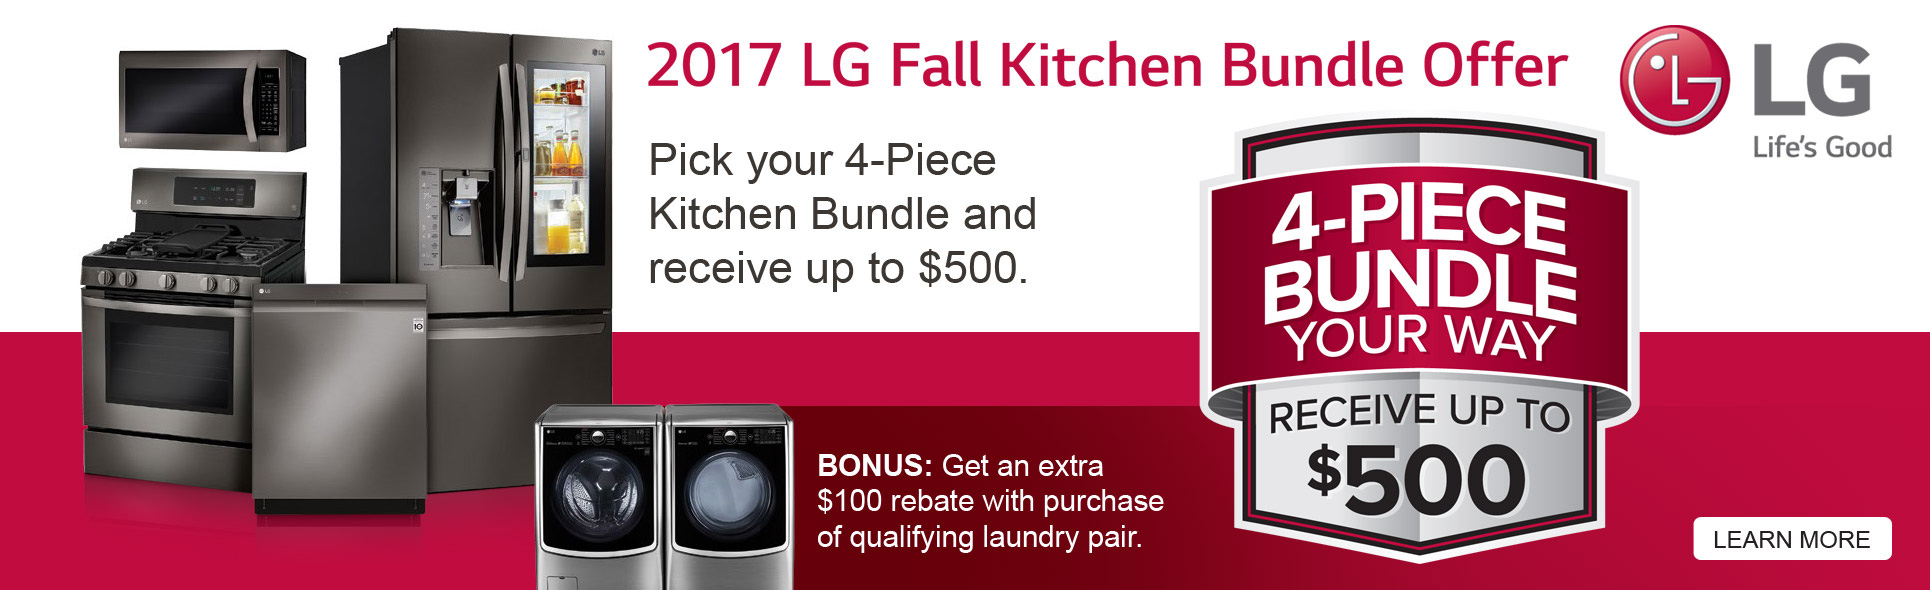 LG Fall Kitchen Bundle Offer- Save up to $500